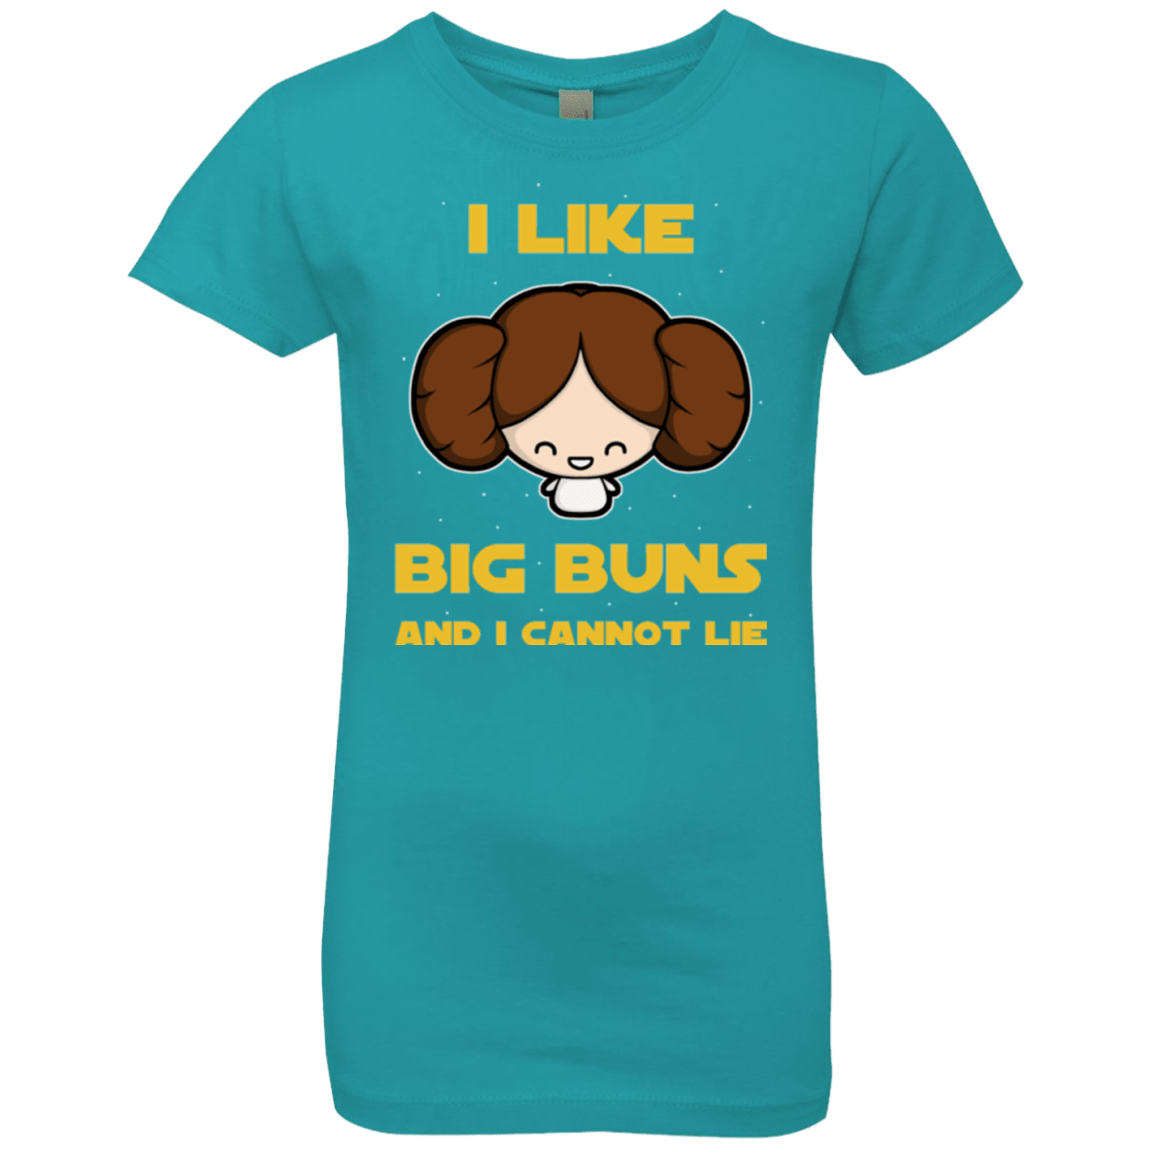 I Like Big Buns Girls Premium T-Shirt